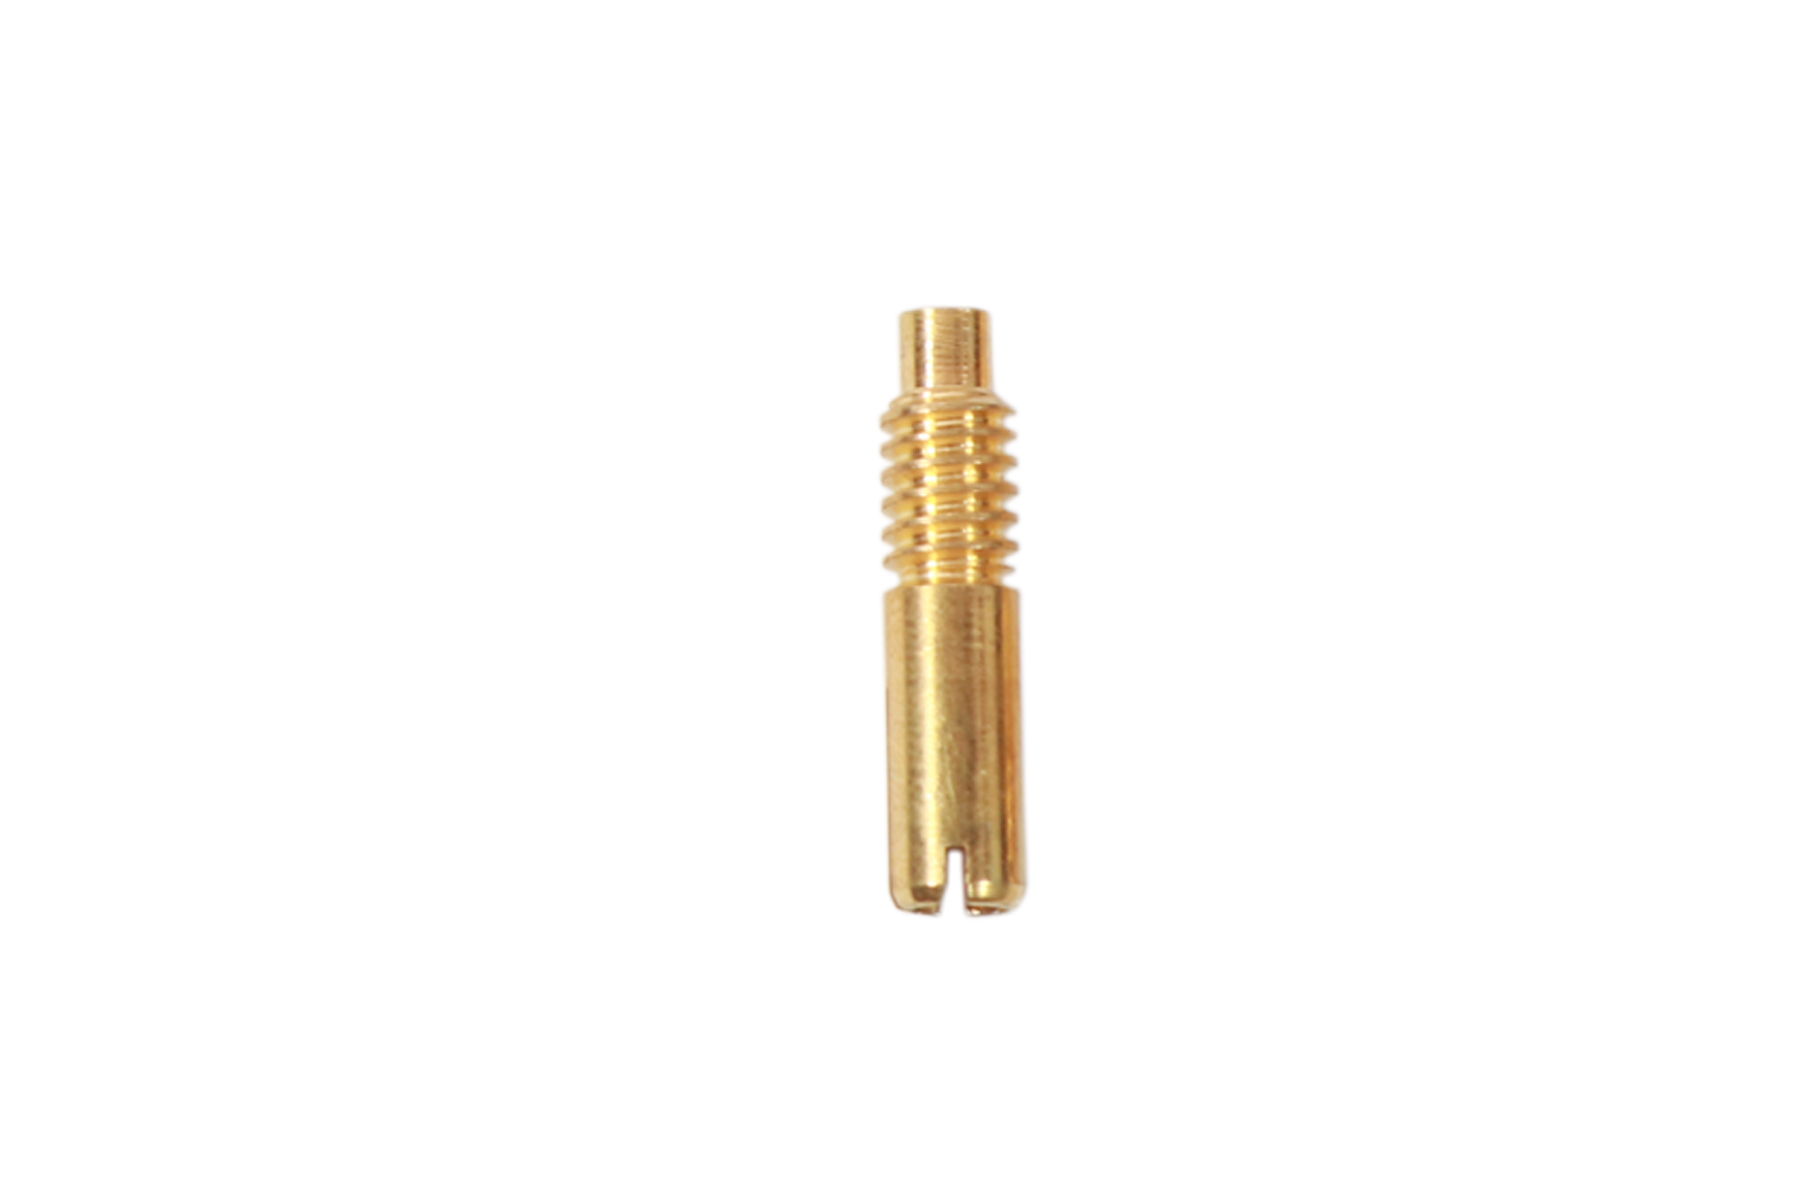 4MM BANANA PIN & SOCKET GOLDEN COLOUR